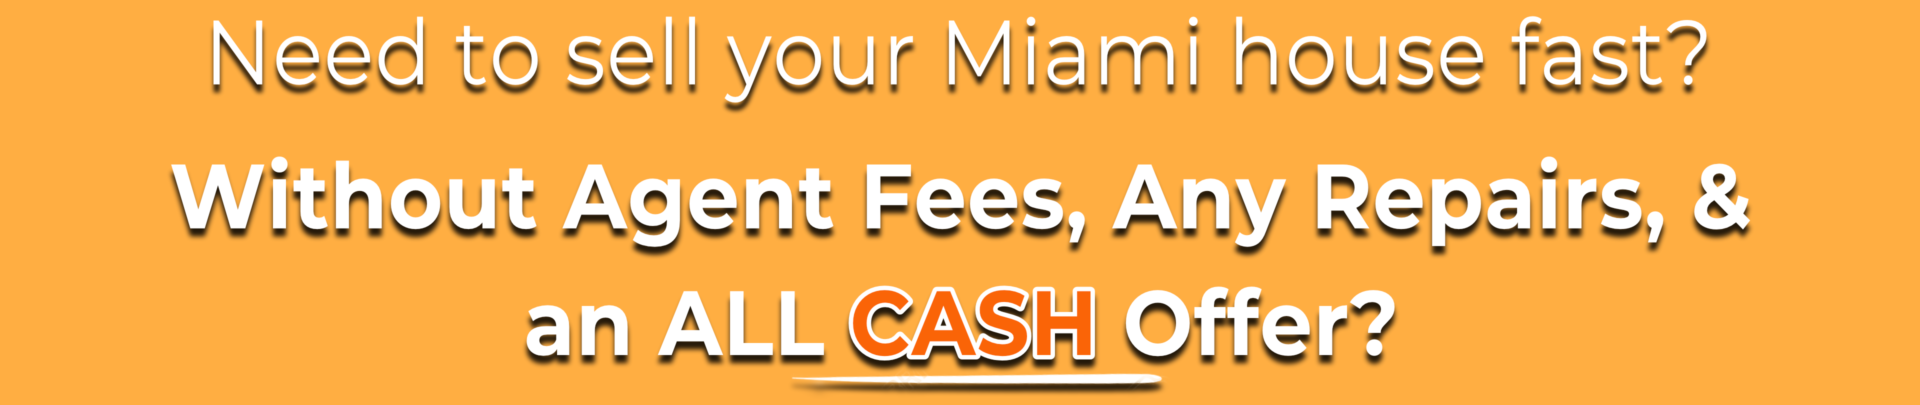 Sell My House Fast Miami | We Buy Houses Miami | Cash for Houses Miami